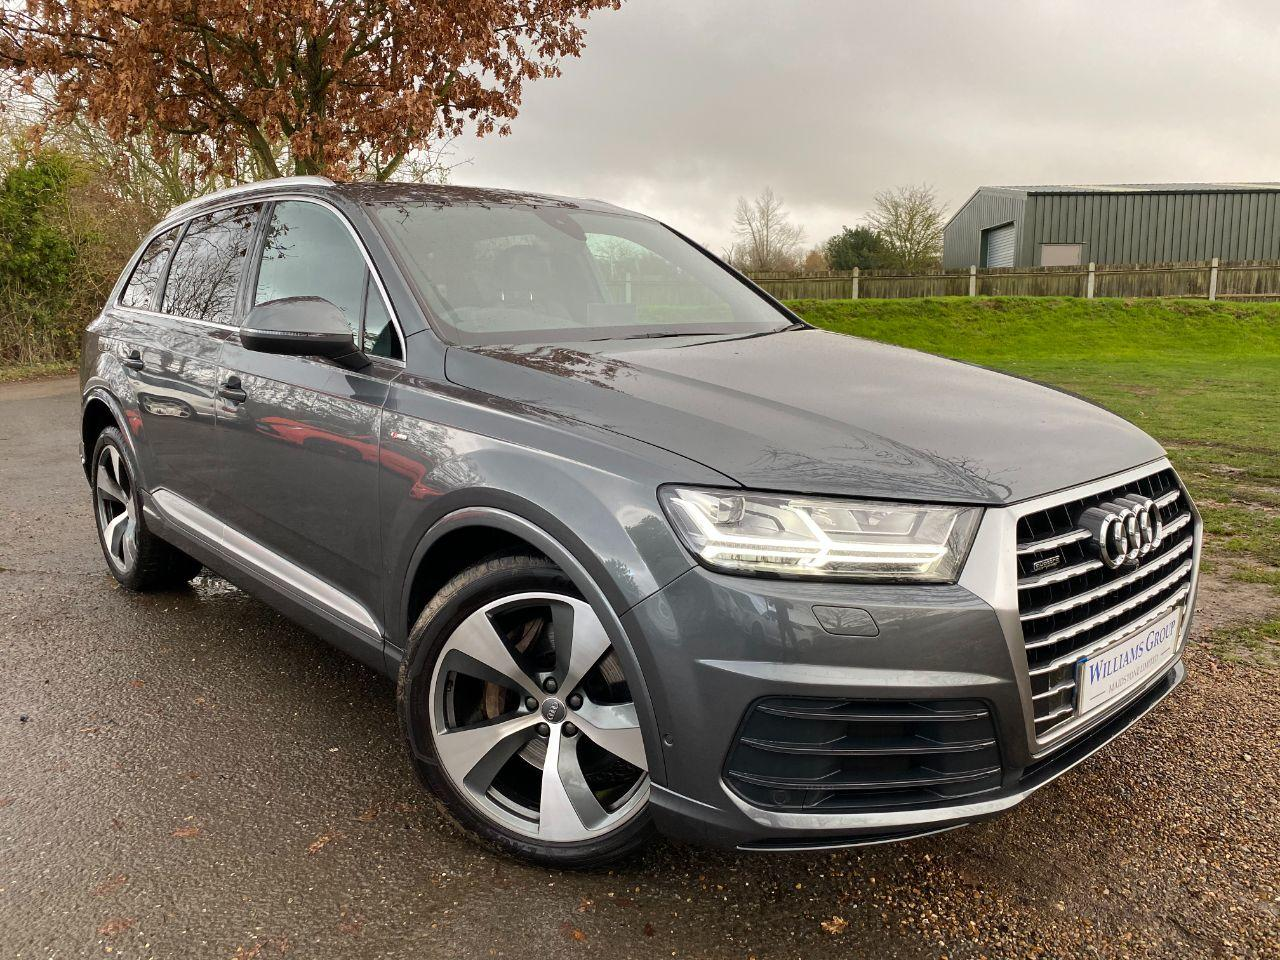 Audi Q7 3.0 TDI Quattro S Line 5dr Tip Auto (Parking Pack! Pan Roof! +++) Estate Diesel Daytona Grey Pearl